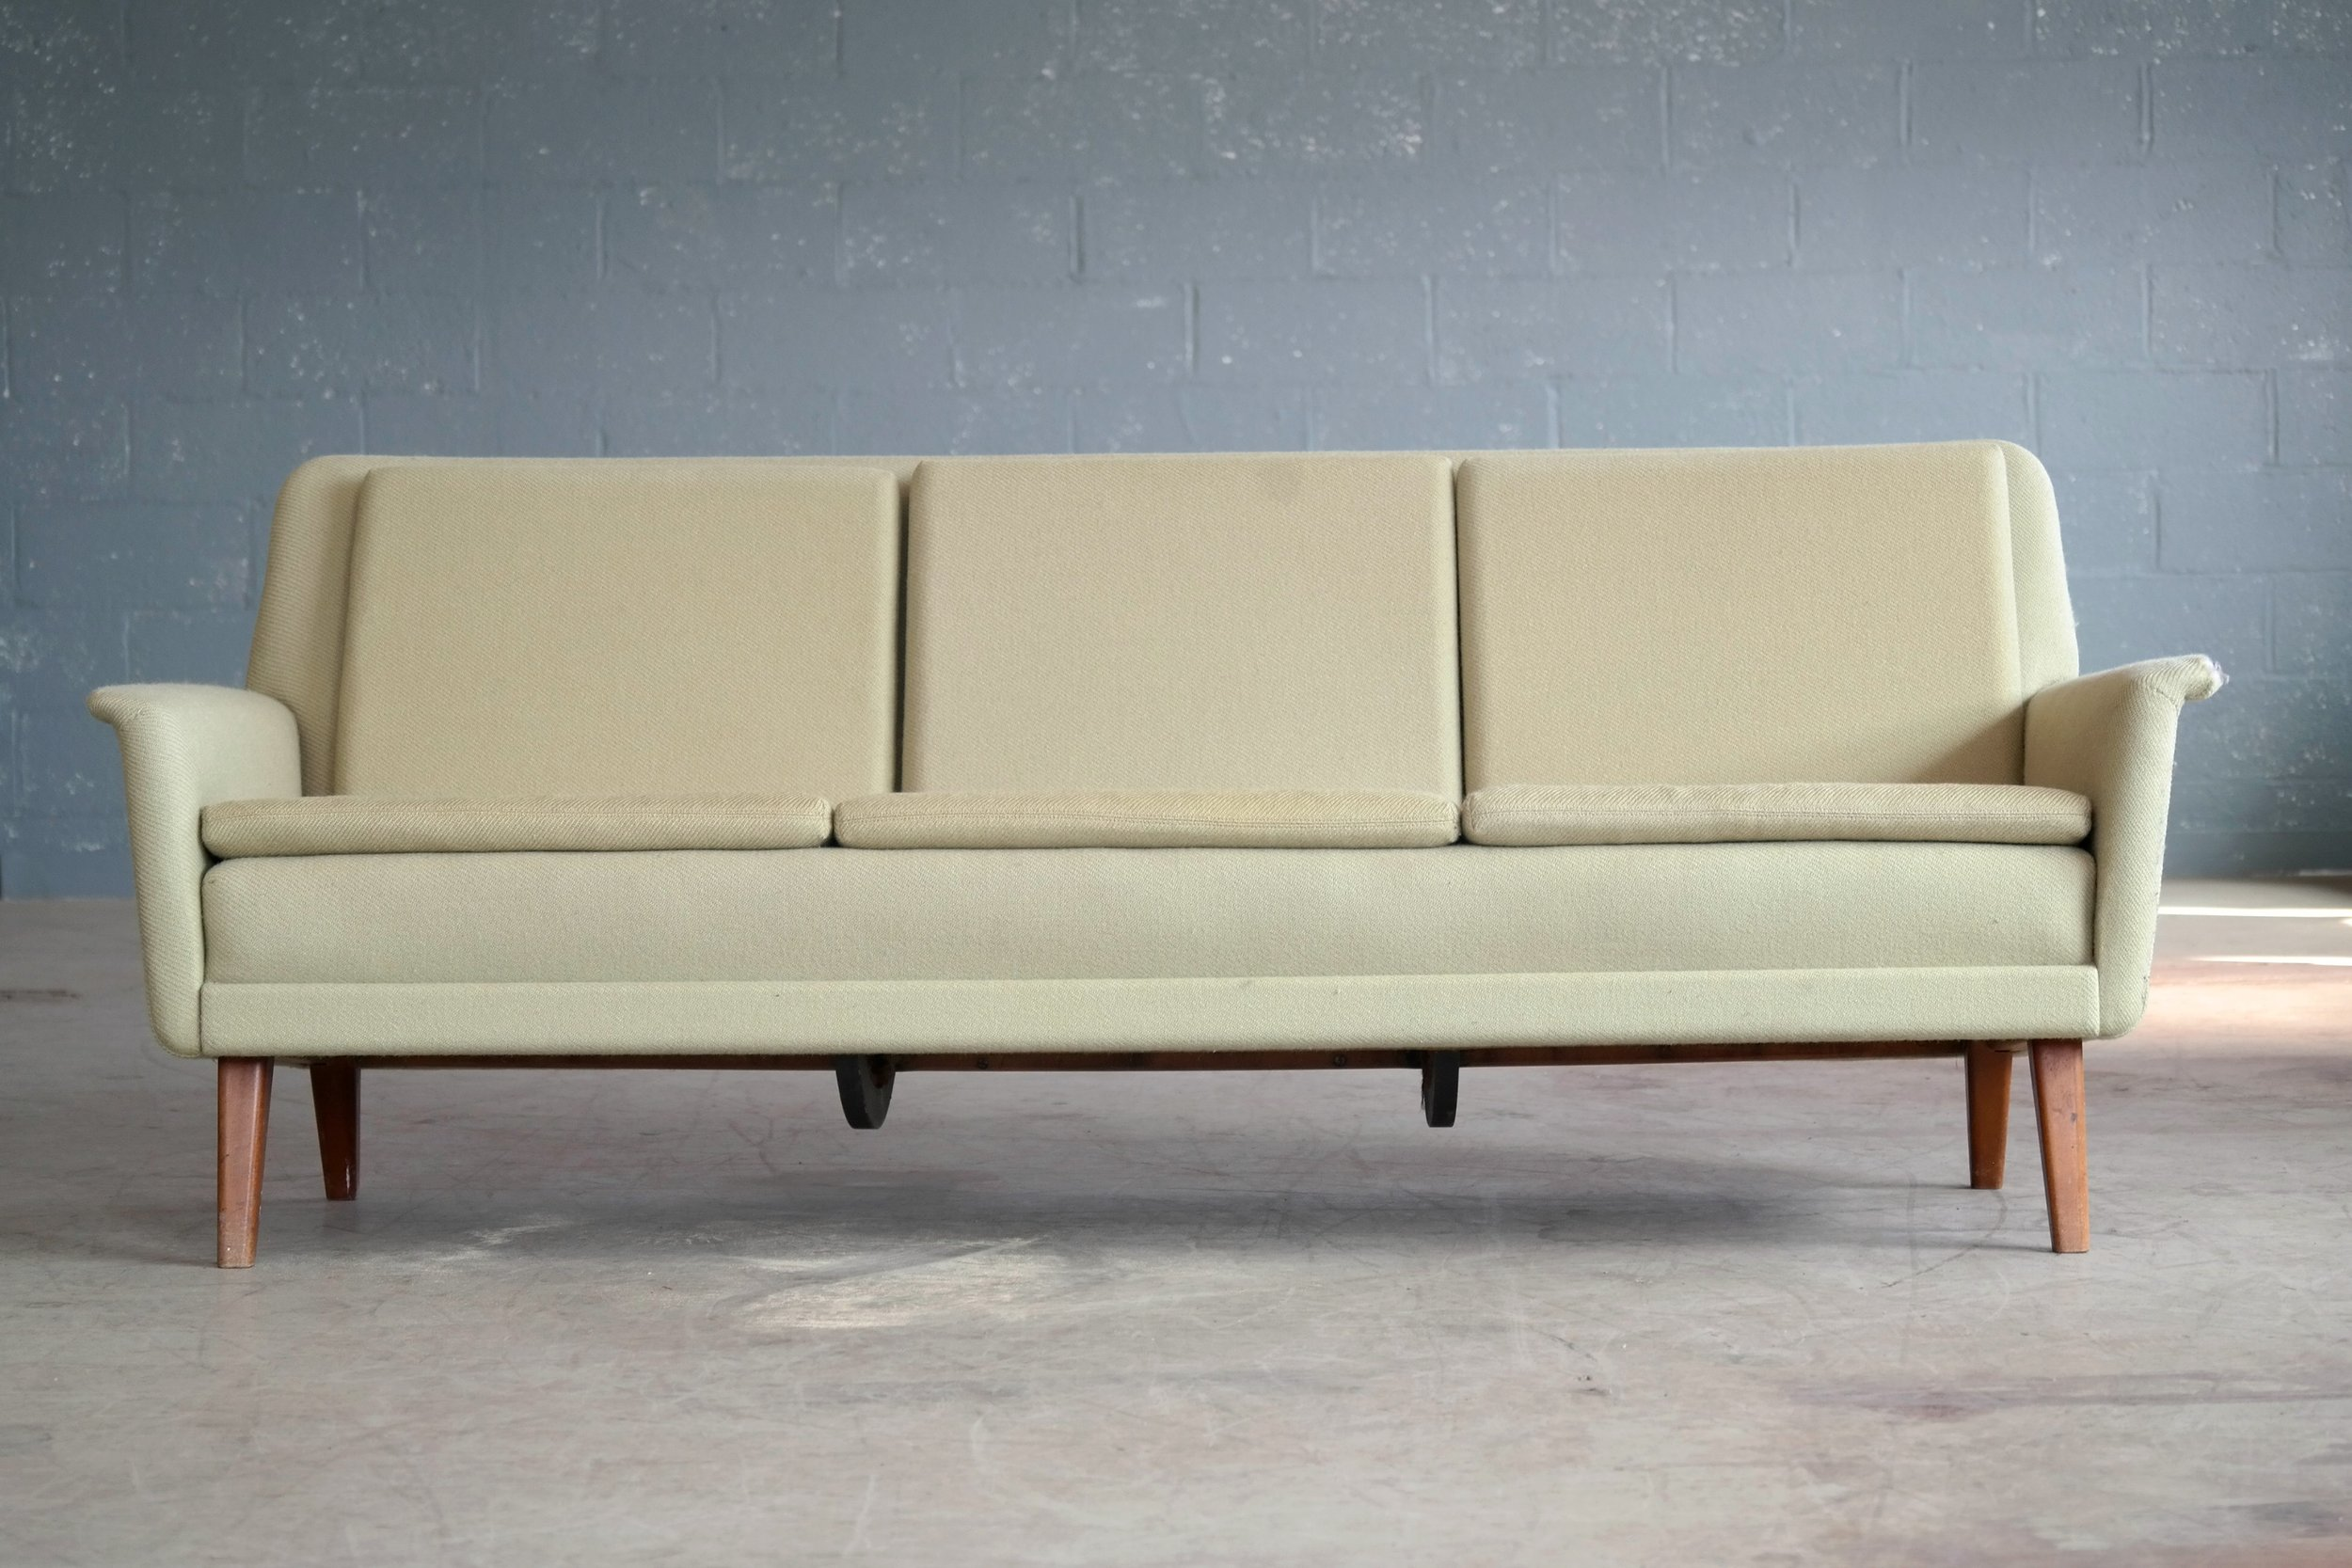 3-seat sofa designed by Folke Ohlsson for Fritz Hansen